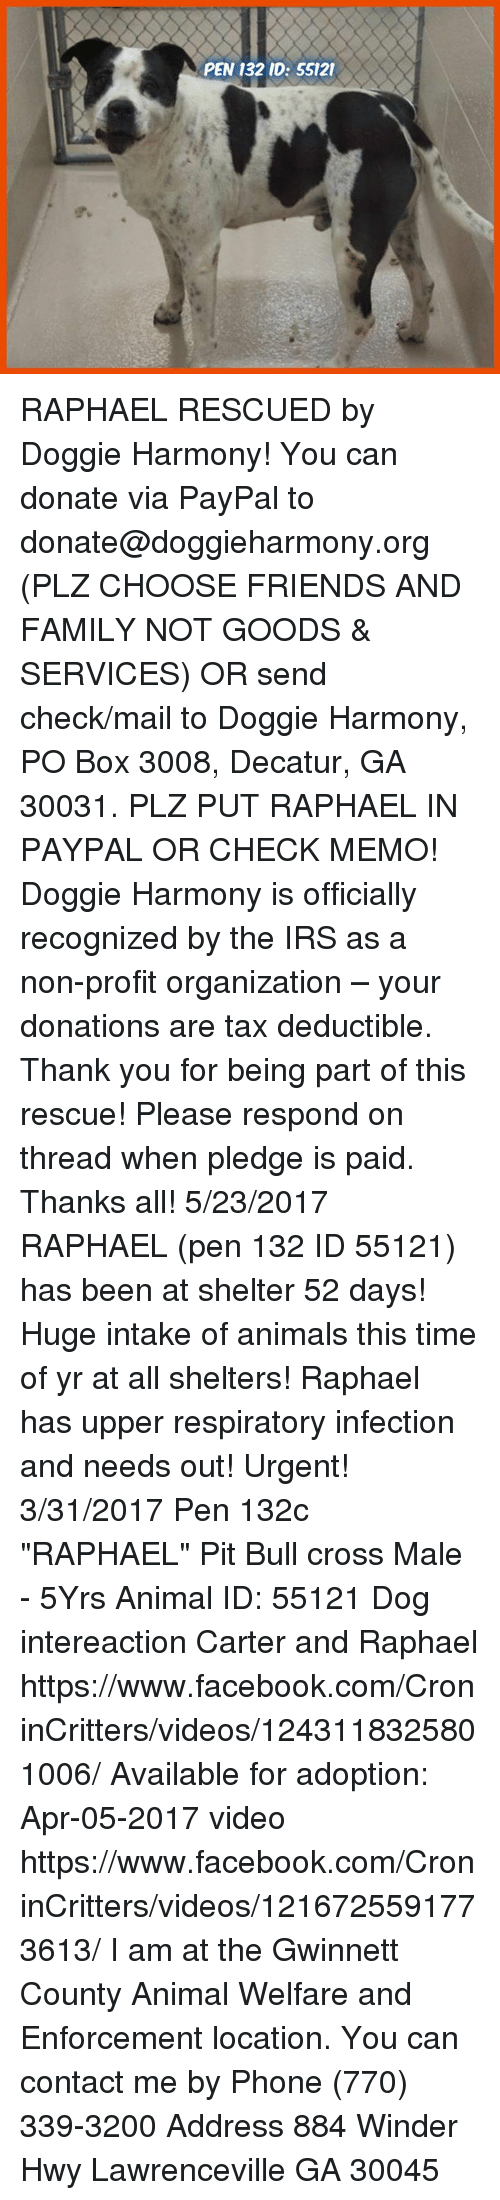 PEN 132 ID 55121 RAPHAEL RESCUED by Doggie Harmony! You Can Donate